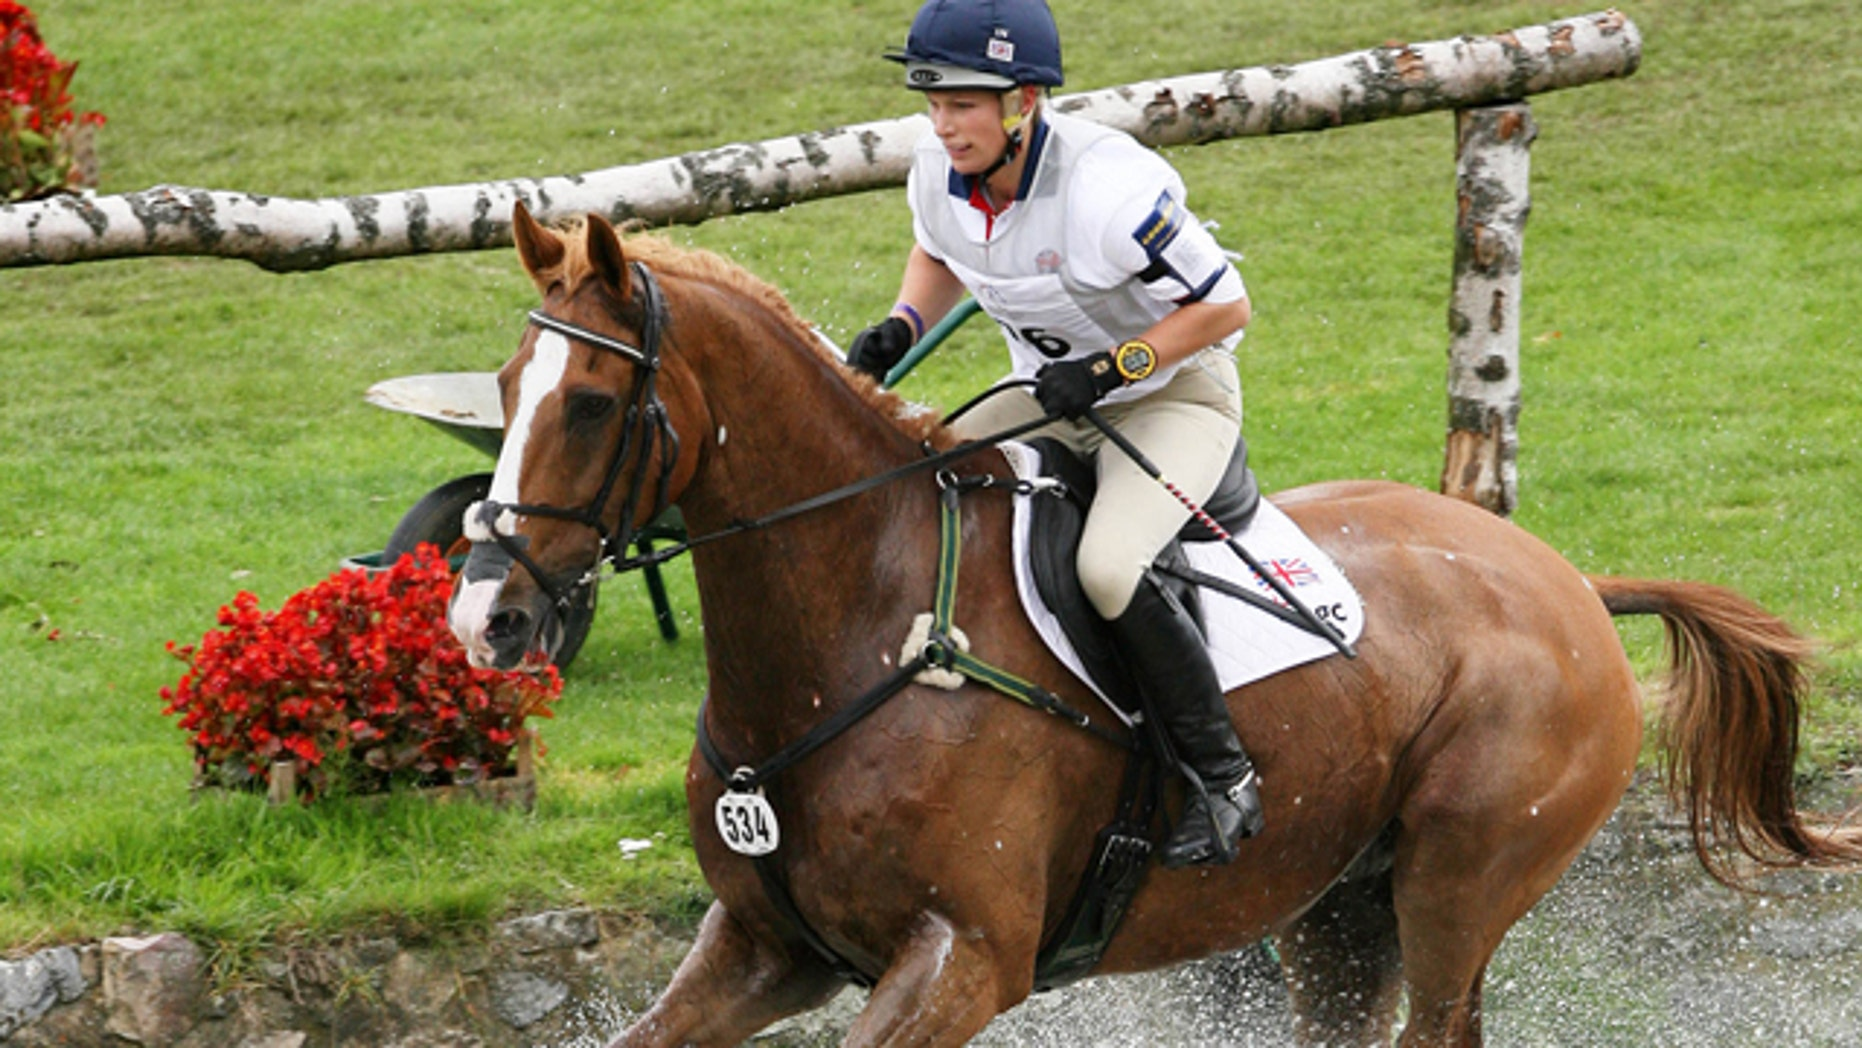 July 7, 2007: This file photo shows Britain's Zara Phillips, granddaughter to Queen Elizabeth II, riding 'Toytown' in the Cross Country Test competition of the Eventing Competitions at the World Equestrian Festival CHIO Aachen 2007 in Aachen, western Germany.